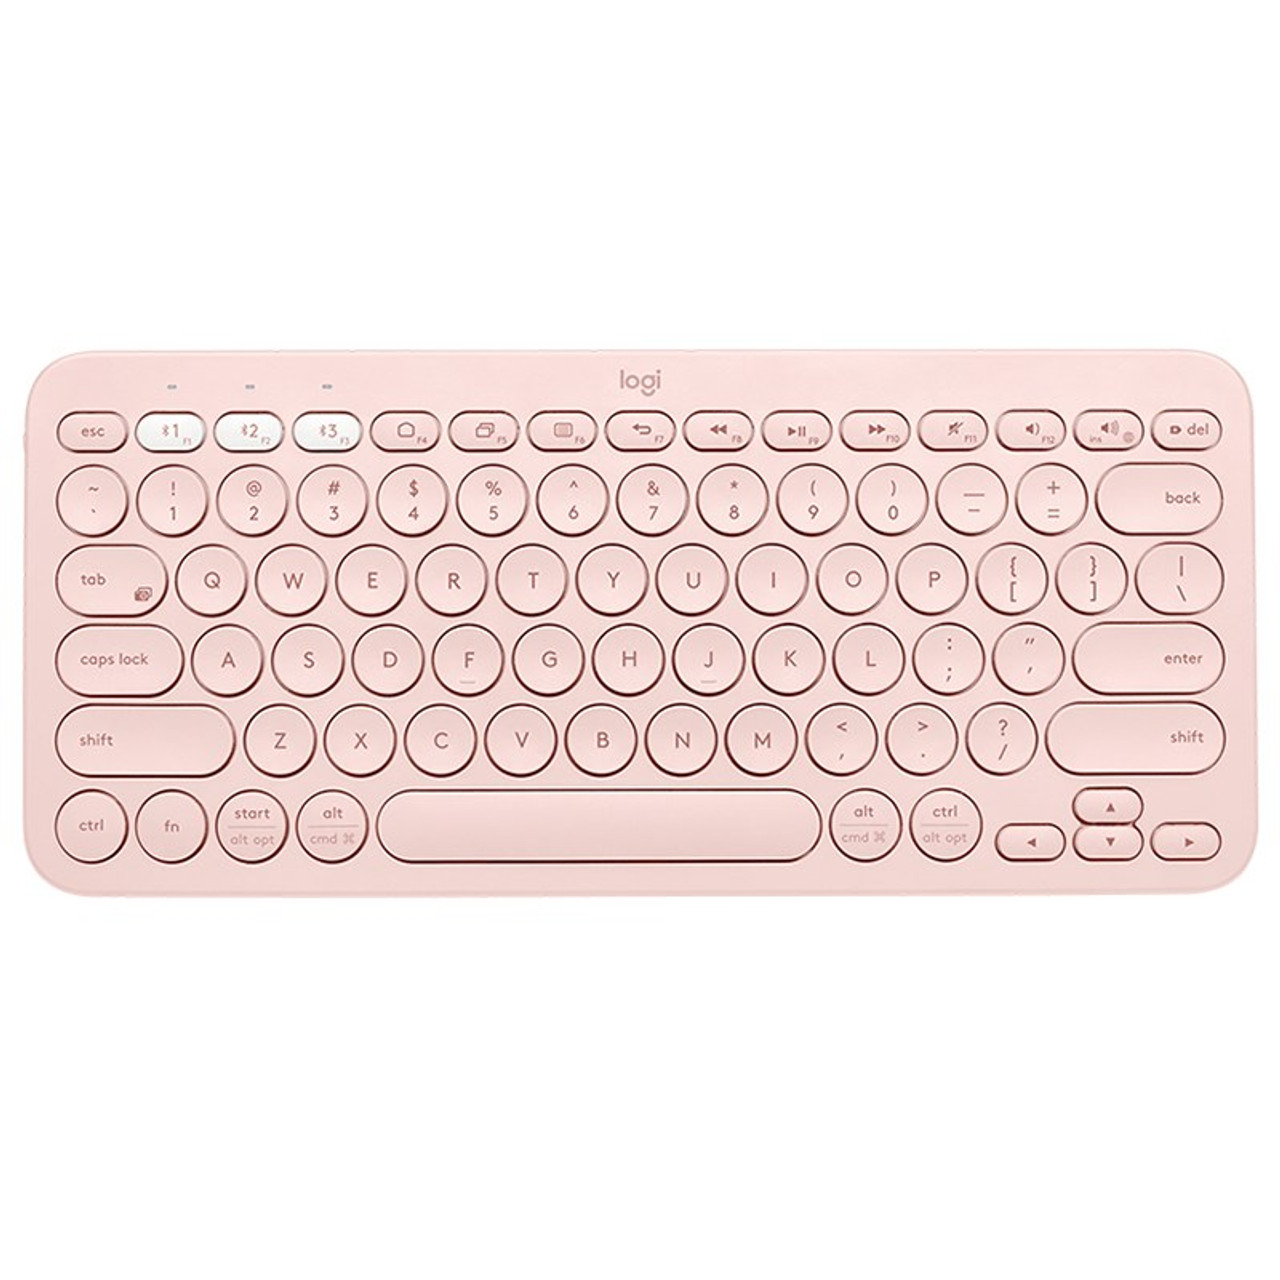 Image for Logitech K380 Multi-Device Wireless Bluetooth Keyboard - Rose CX Computer Superstore